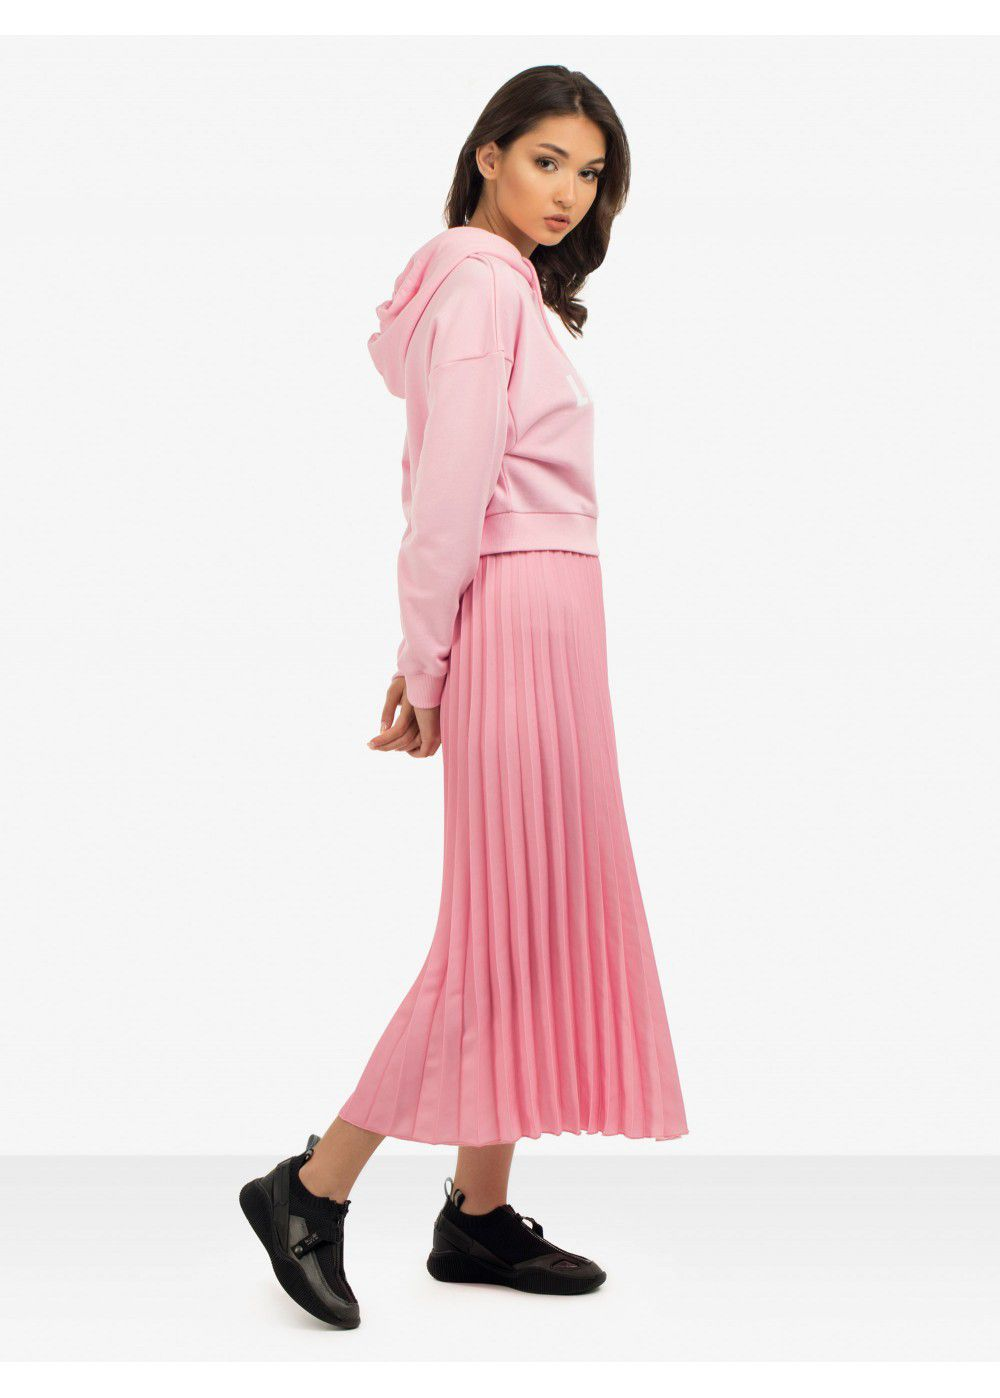 Quantum Courage Pleated Skirt in Pink